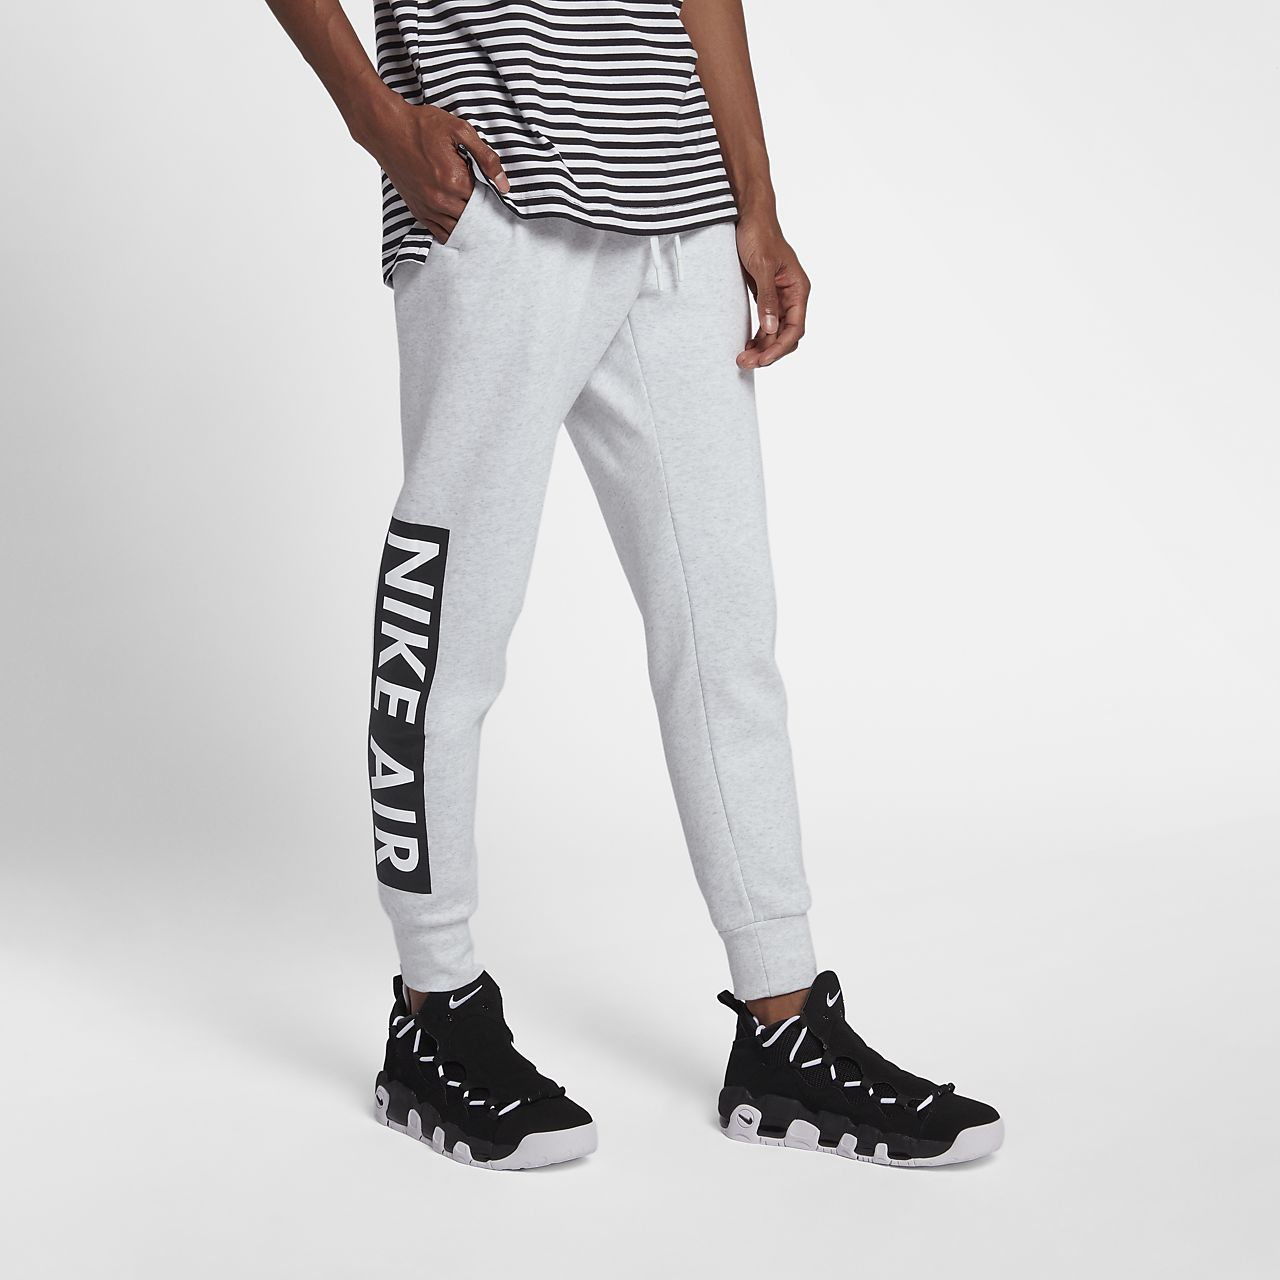 Pantaloni in fleece Nike Air - Uomo